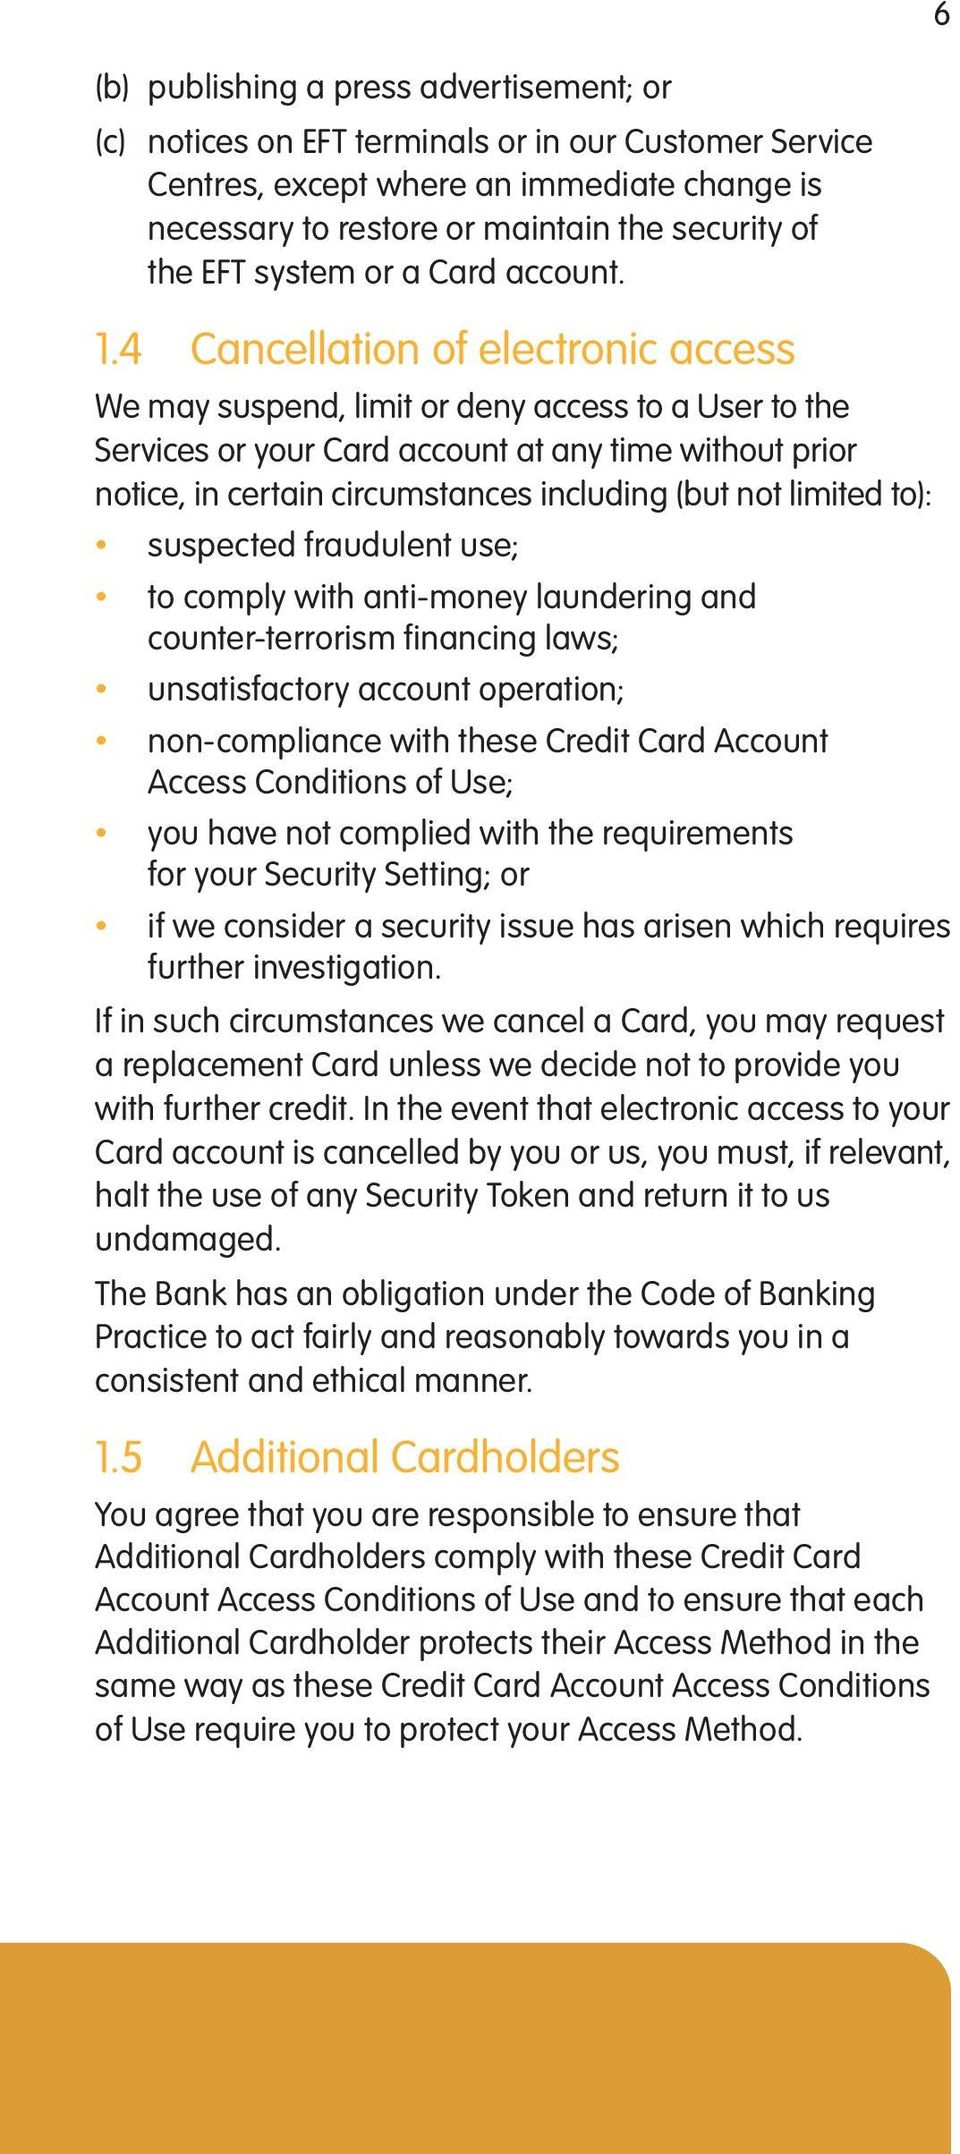 4 Cancellation of electronic access We may suspend, limit or deny access to a User to the Services or your Card account at any time without prior notice, in certain circumstances including (but not